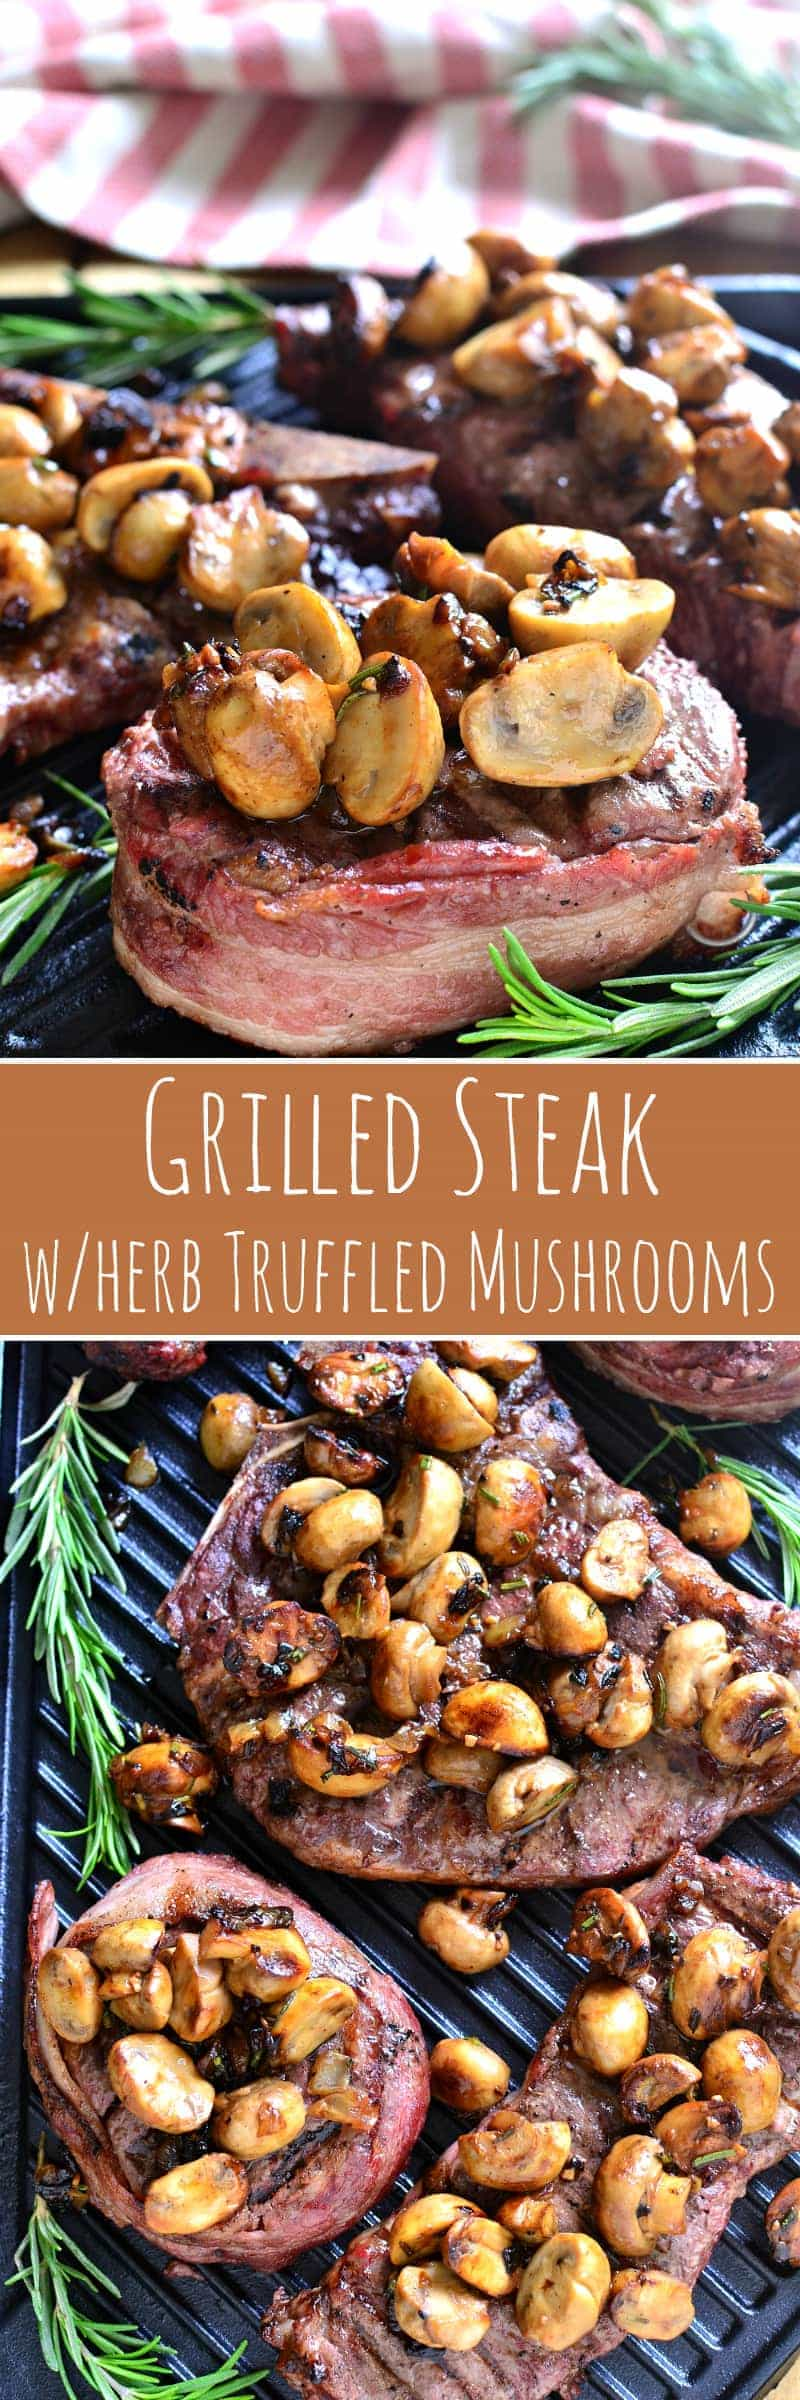 Grilled Steak with Herb Truffled Mushrooms - a surprisingly simple, completely delicious dish that's guaranteed to turn heads! Perfect for Father's Day, date night, or a weekend cookout with friends, this is the BEST way to enjoy steak...and so easy to prepare!